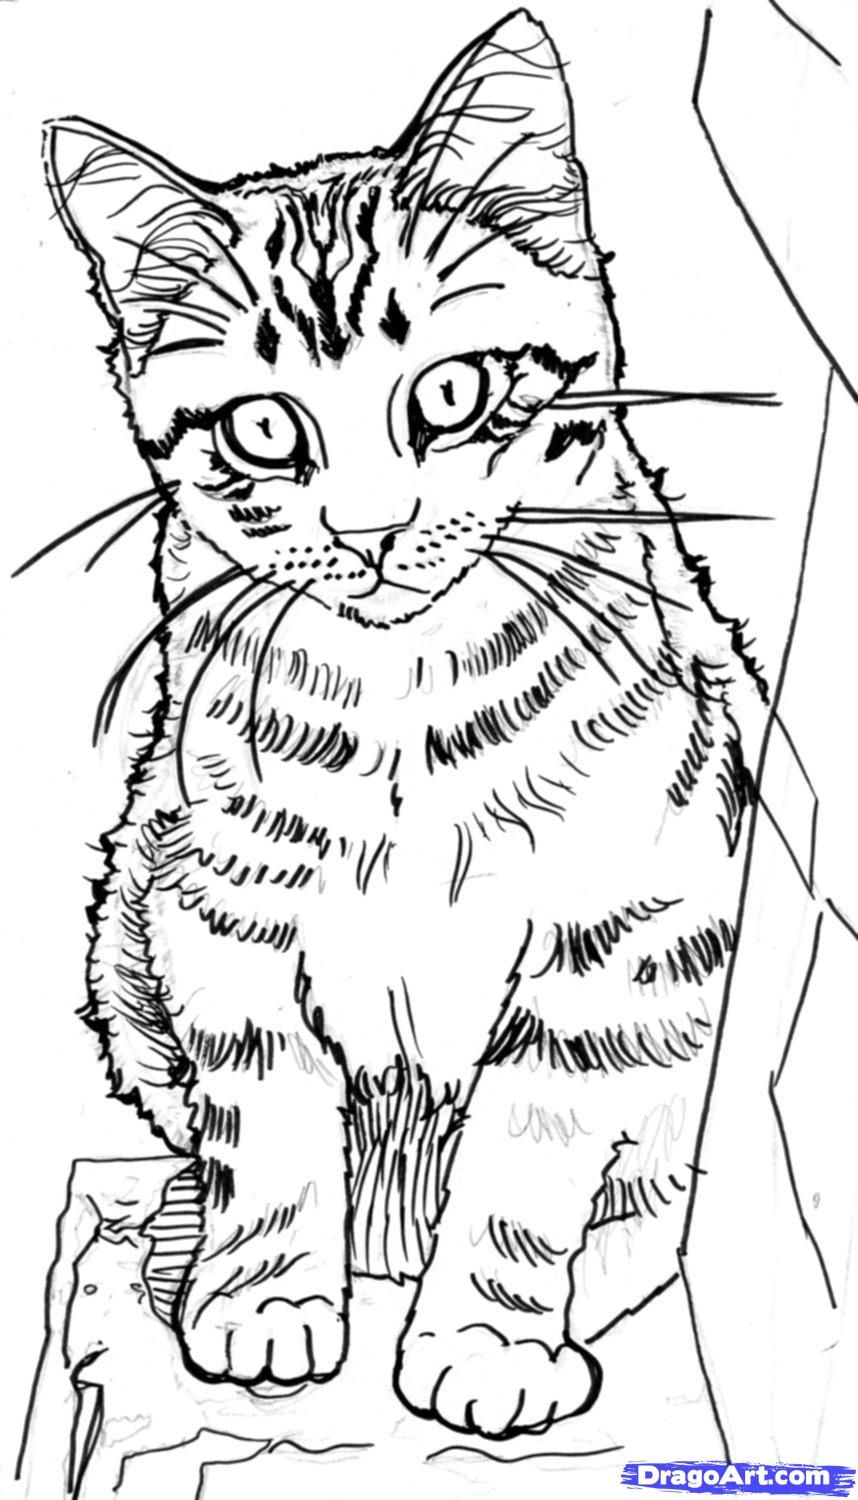 how to sketch a cat step by step sketch drawing technique free Cat DJ how to sketch a cat step by step sketch drawing technique free